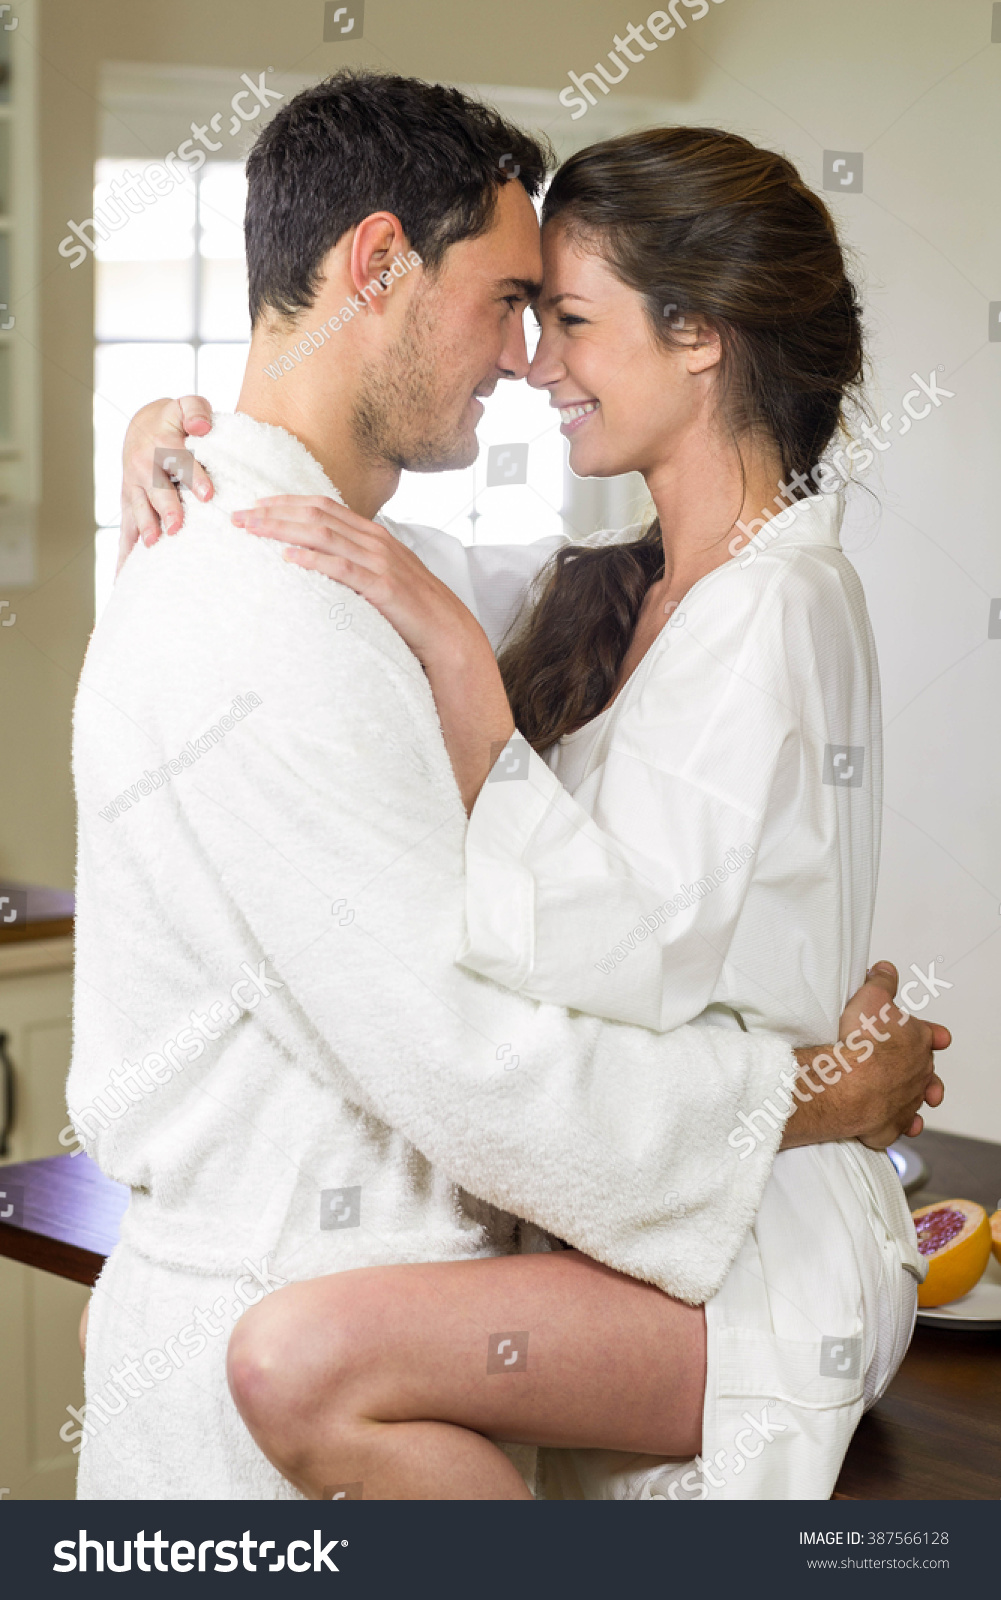 Romantic Young Couple Bathrobe Cuddling Each Stock Photo (Royalty ...